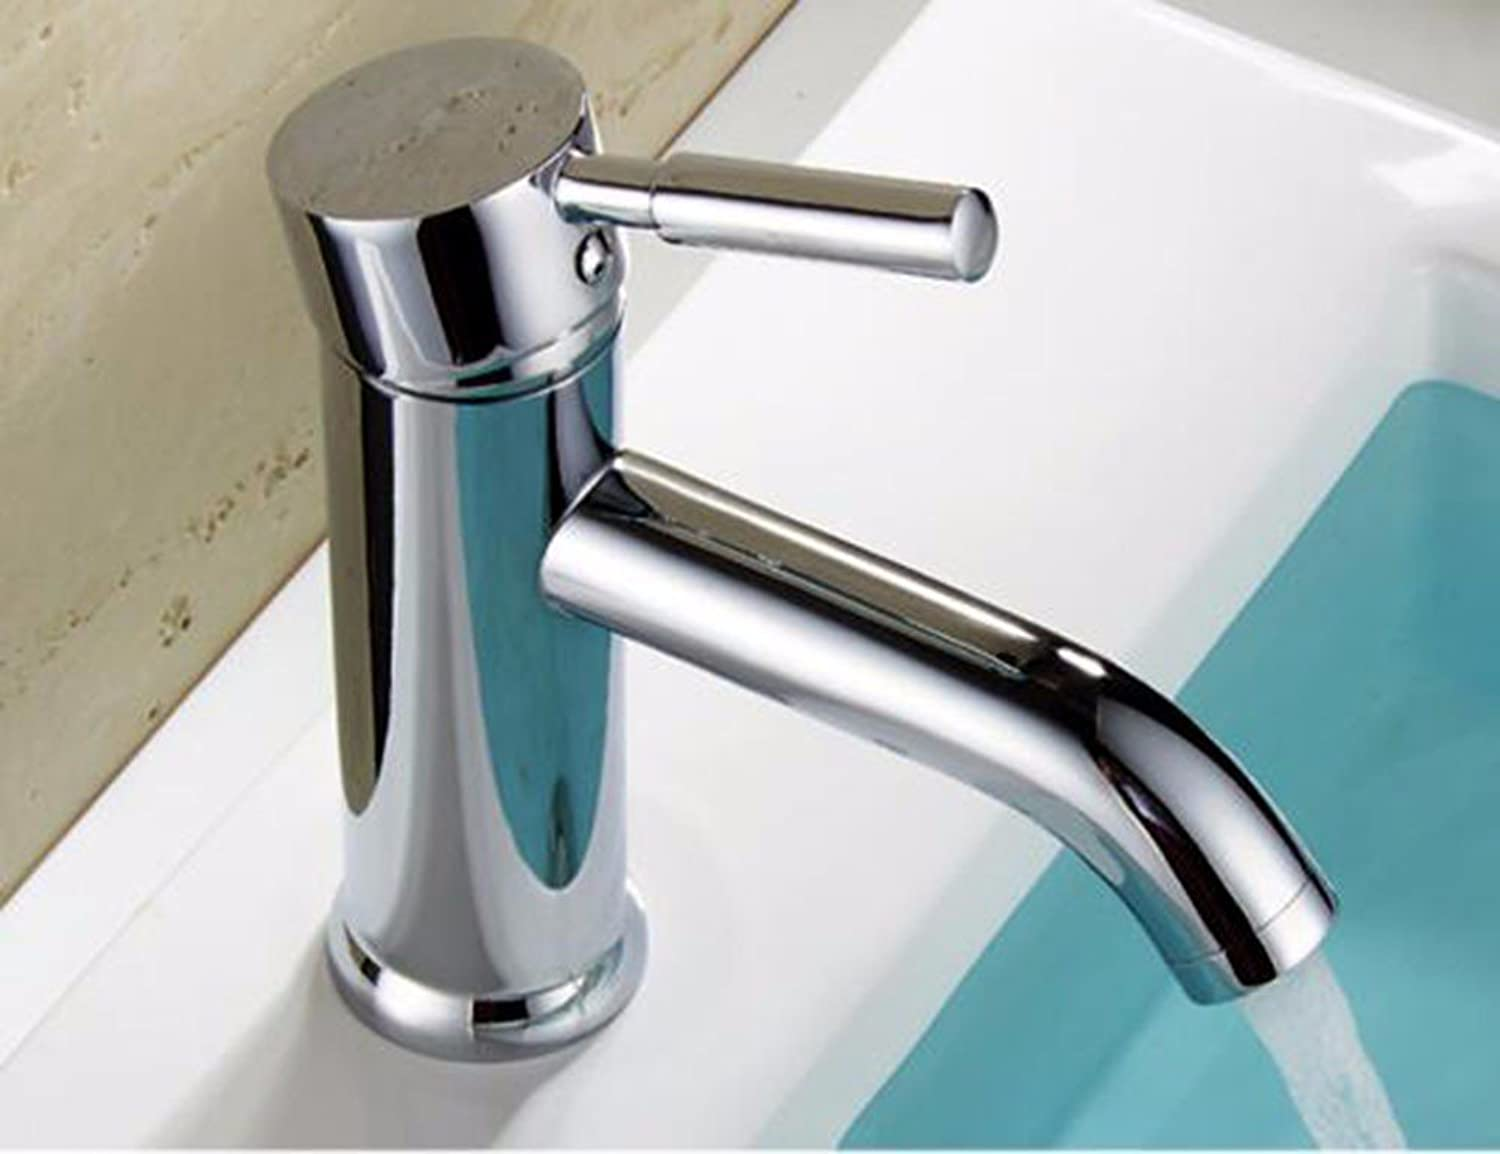 LHbox Basin Mixer Tap All-round copper faucet, bench top table art vanity area with sink bathroom cabinet faucet, high and low single hole single handle cold water faucet